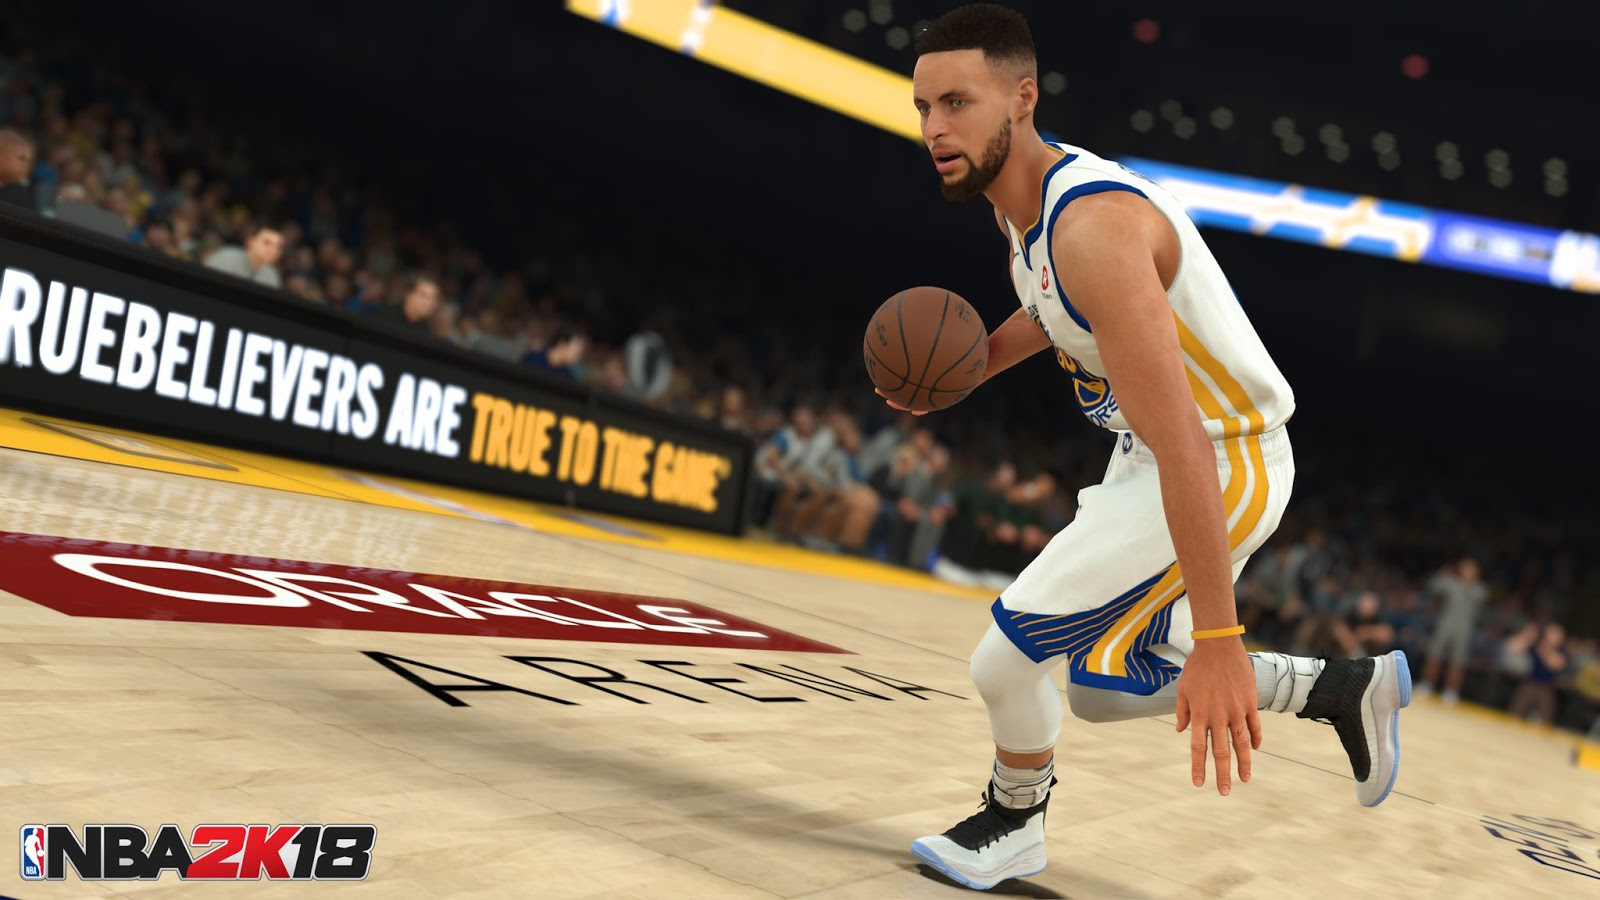 To Celebrate The Launch Of Stephen Currys Latest Signature Shoes Under Armour Partnered With 2K Sports Give Players A Special Set In Game Items